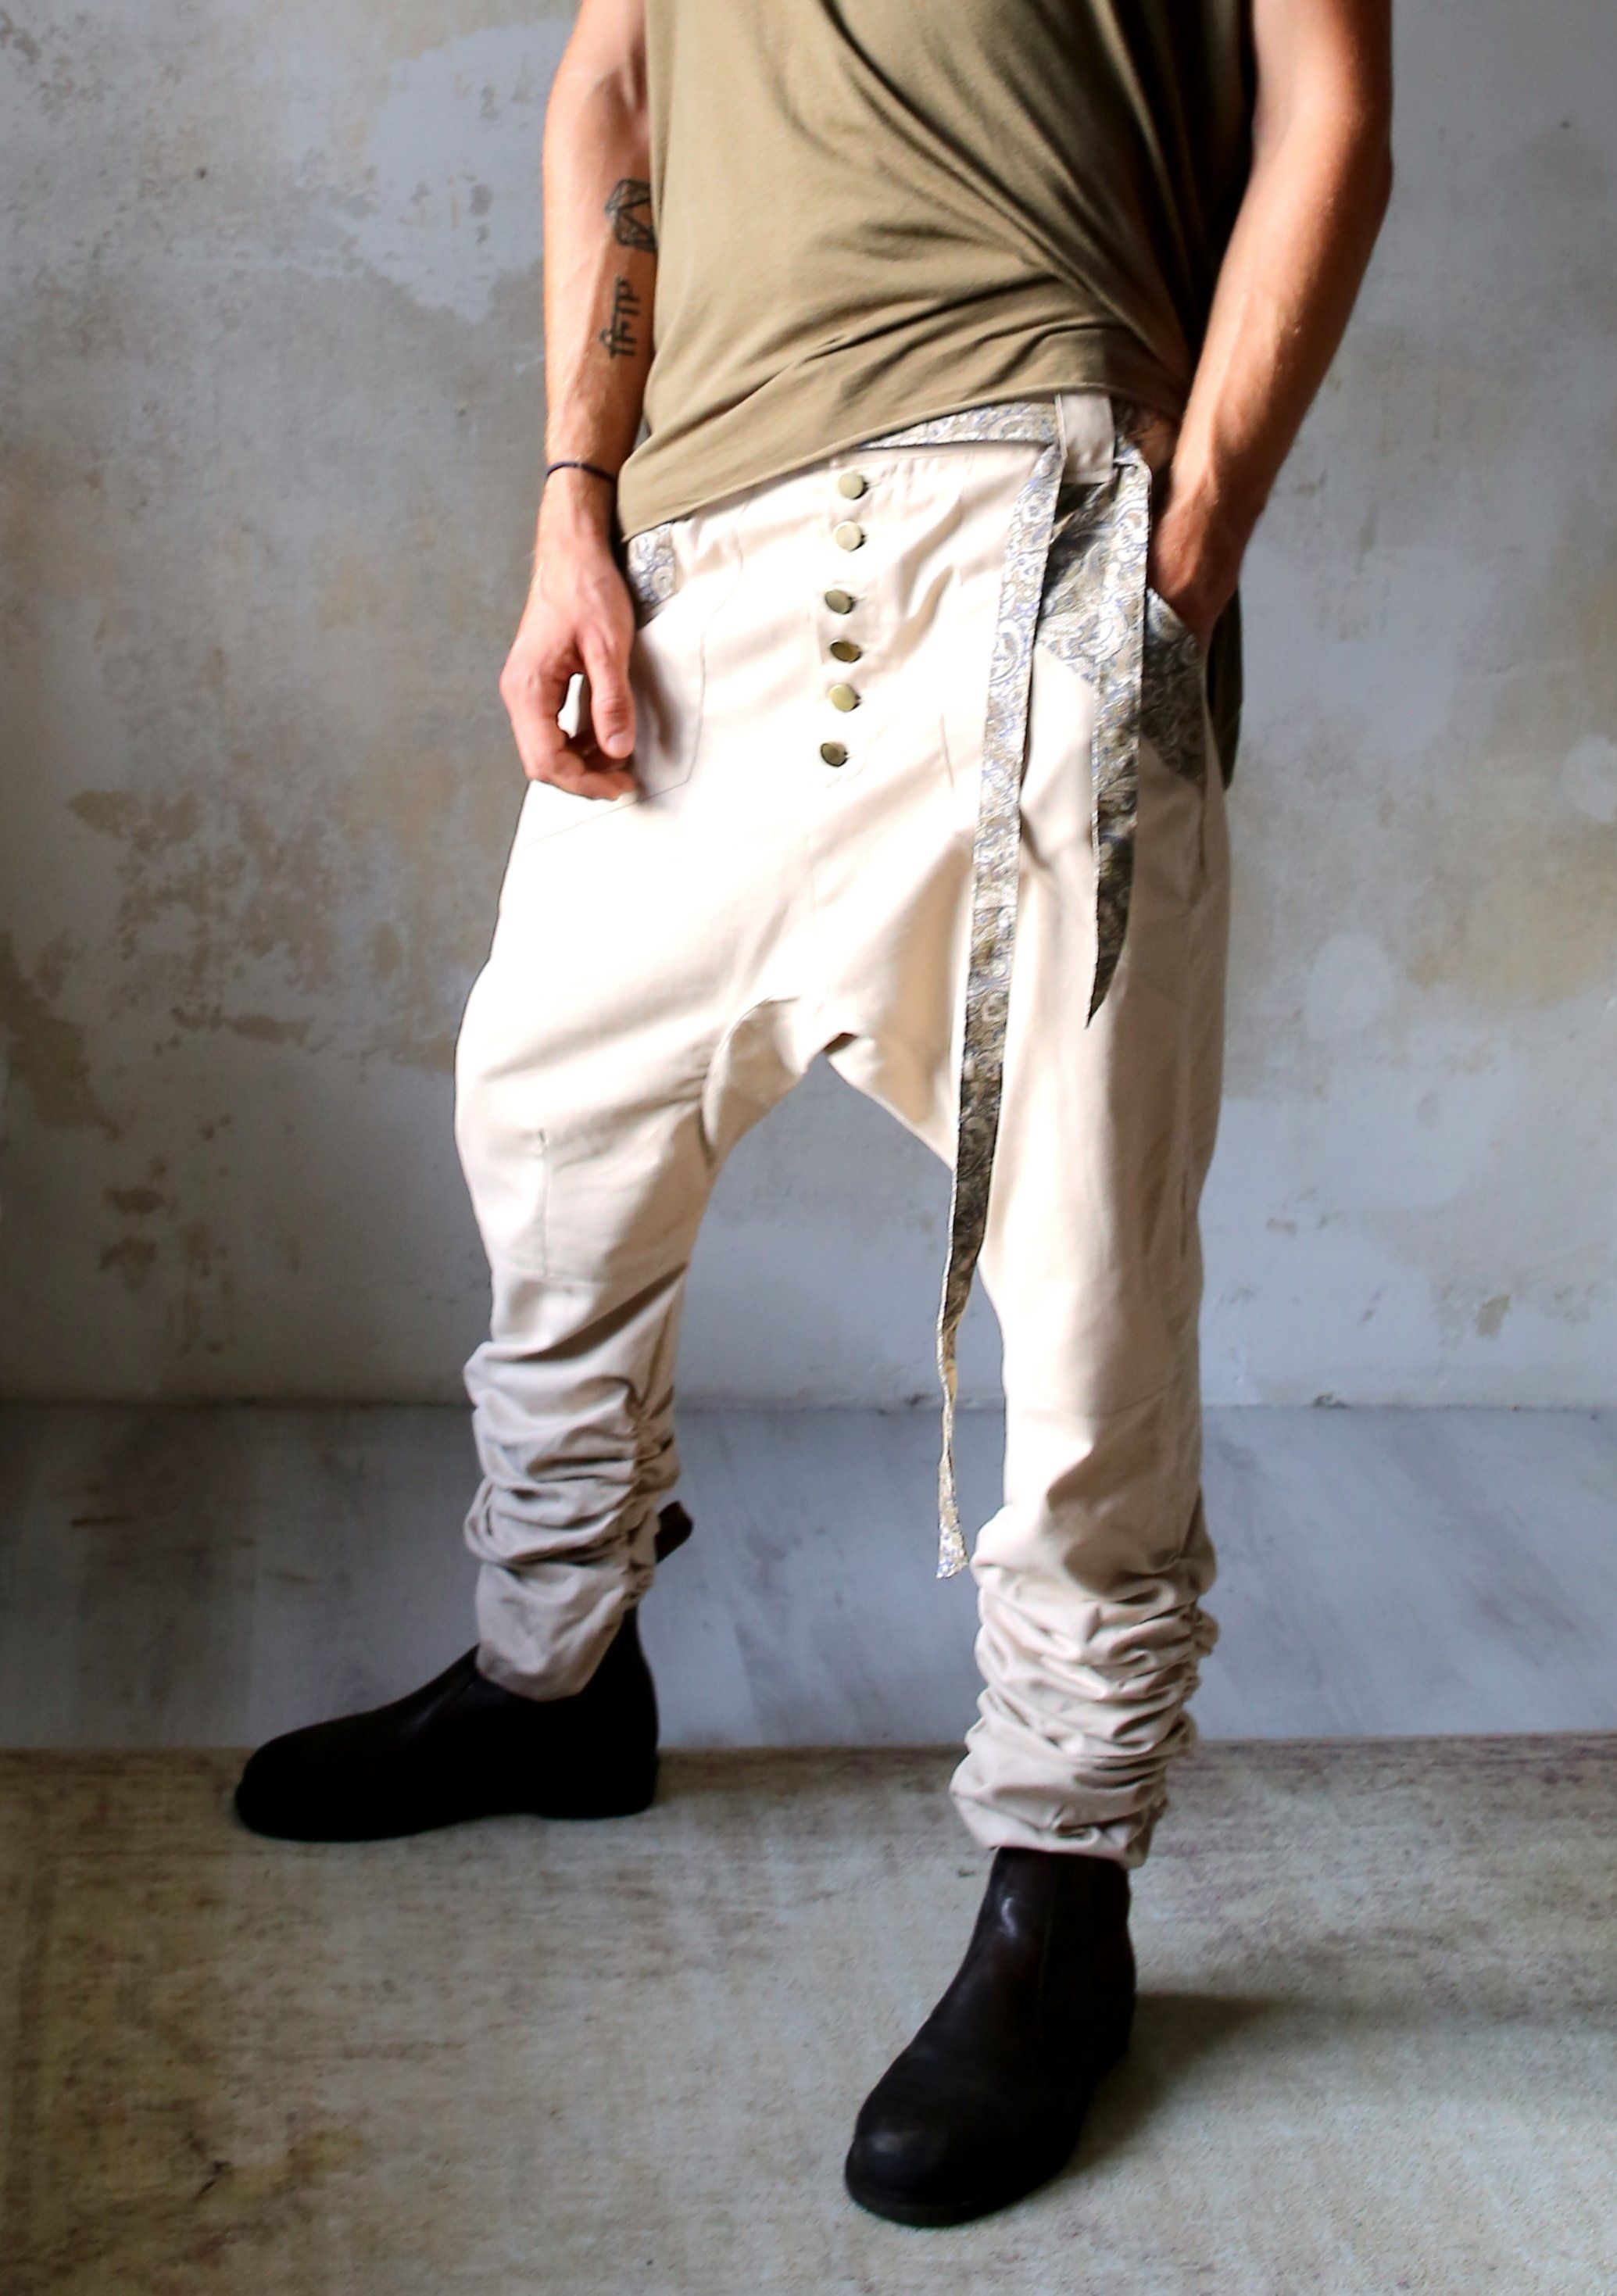 3e7ebe856e1 UNI PREMIUM - classic drop crotch pants with funky details  #ClothingForUrbanNomads #VALODesign #finnishdesign #ethicalfashion  #dropcrotch #BedouinClothing # ...